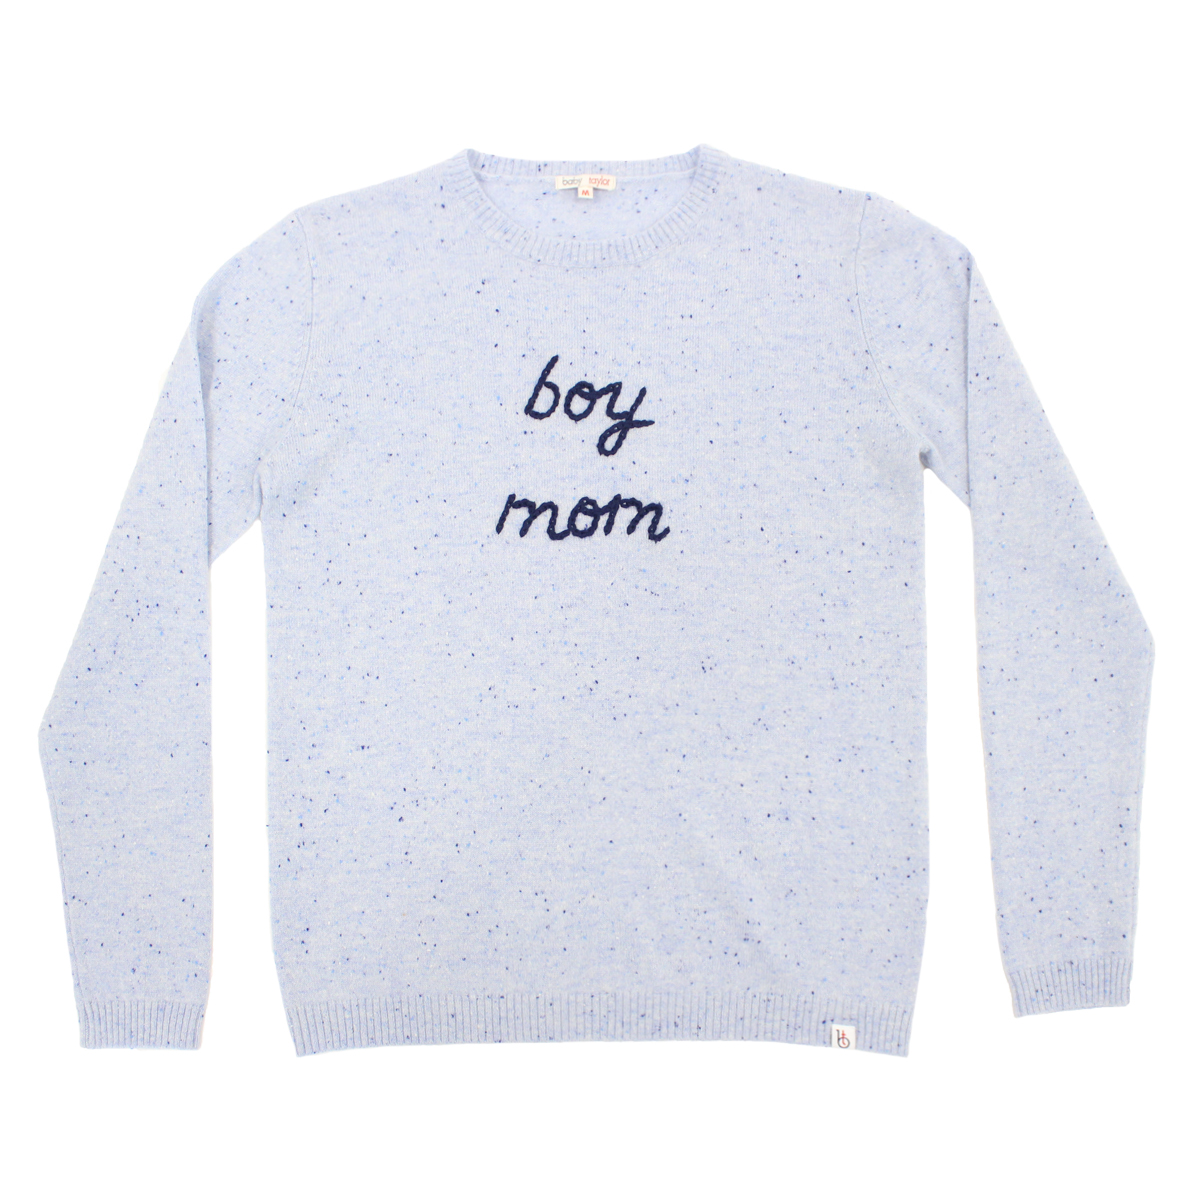 Baby & Taylor Adult Cashmere Sweater in Speckled Blue with navy embroidery